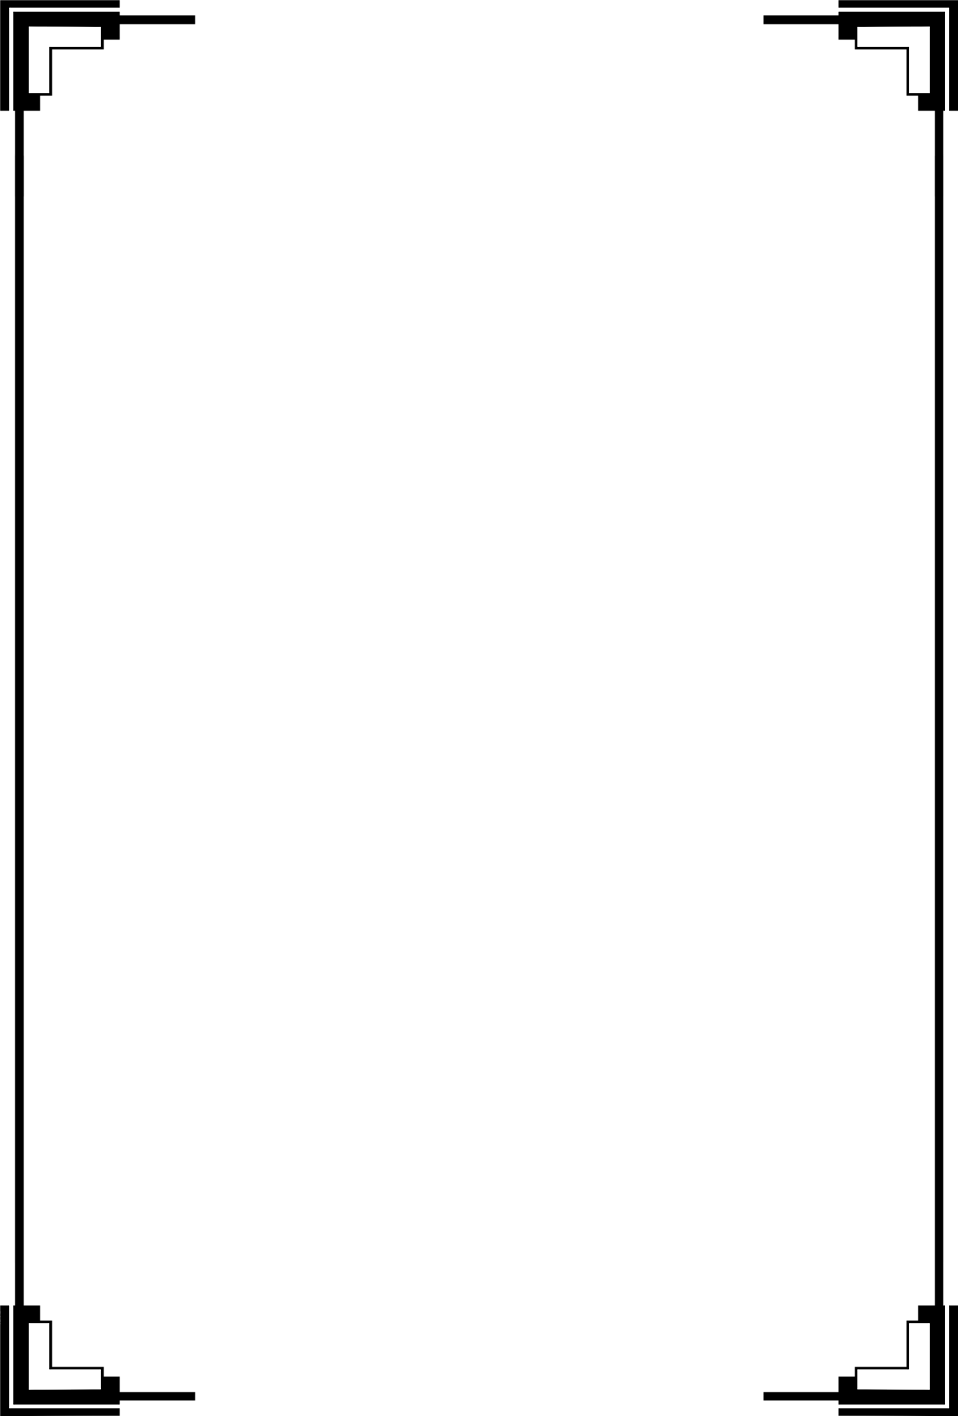 Illustration of a blank frame border.